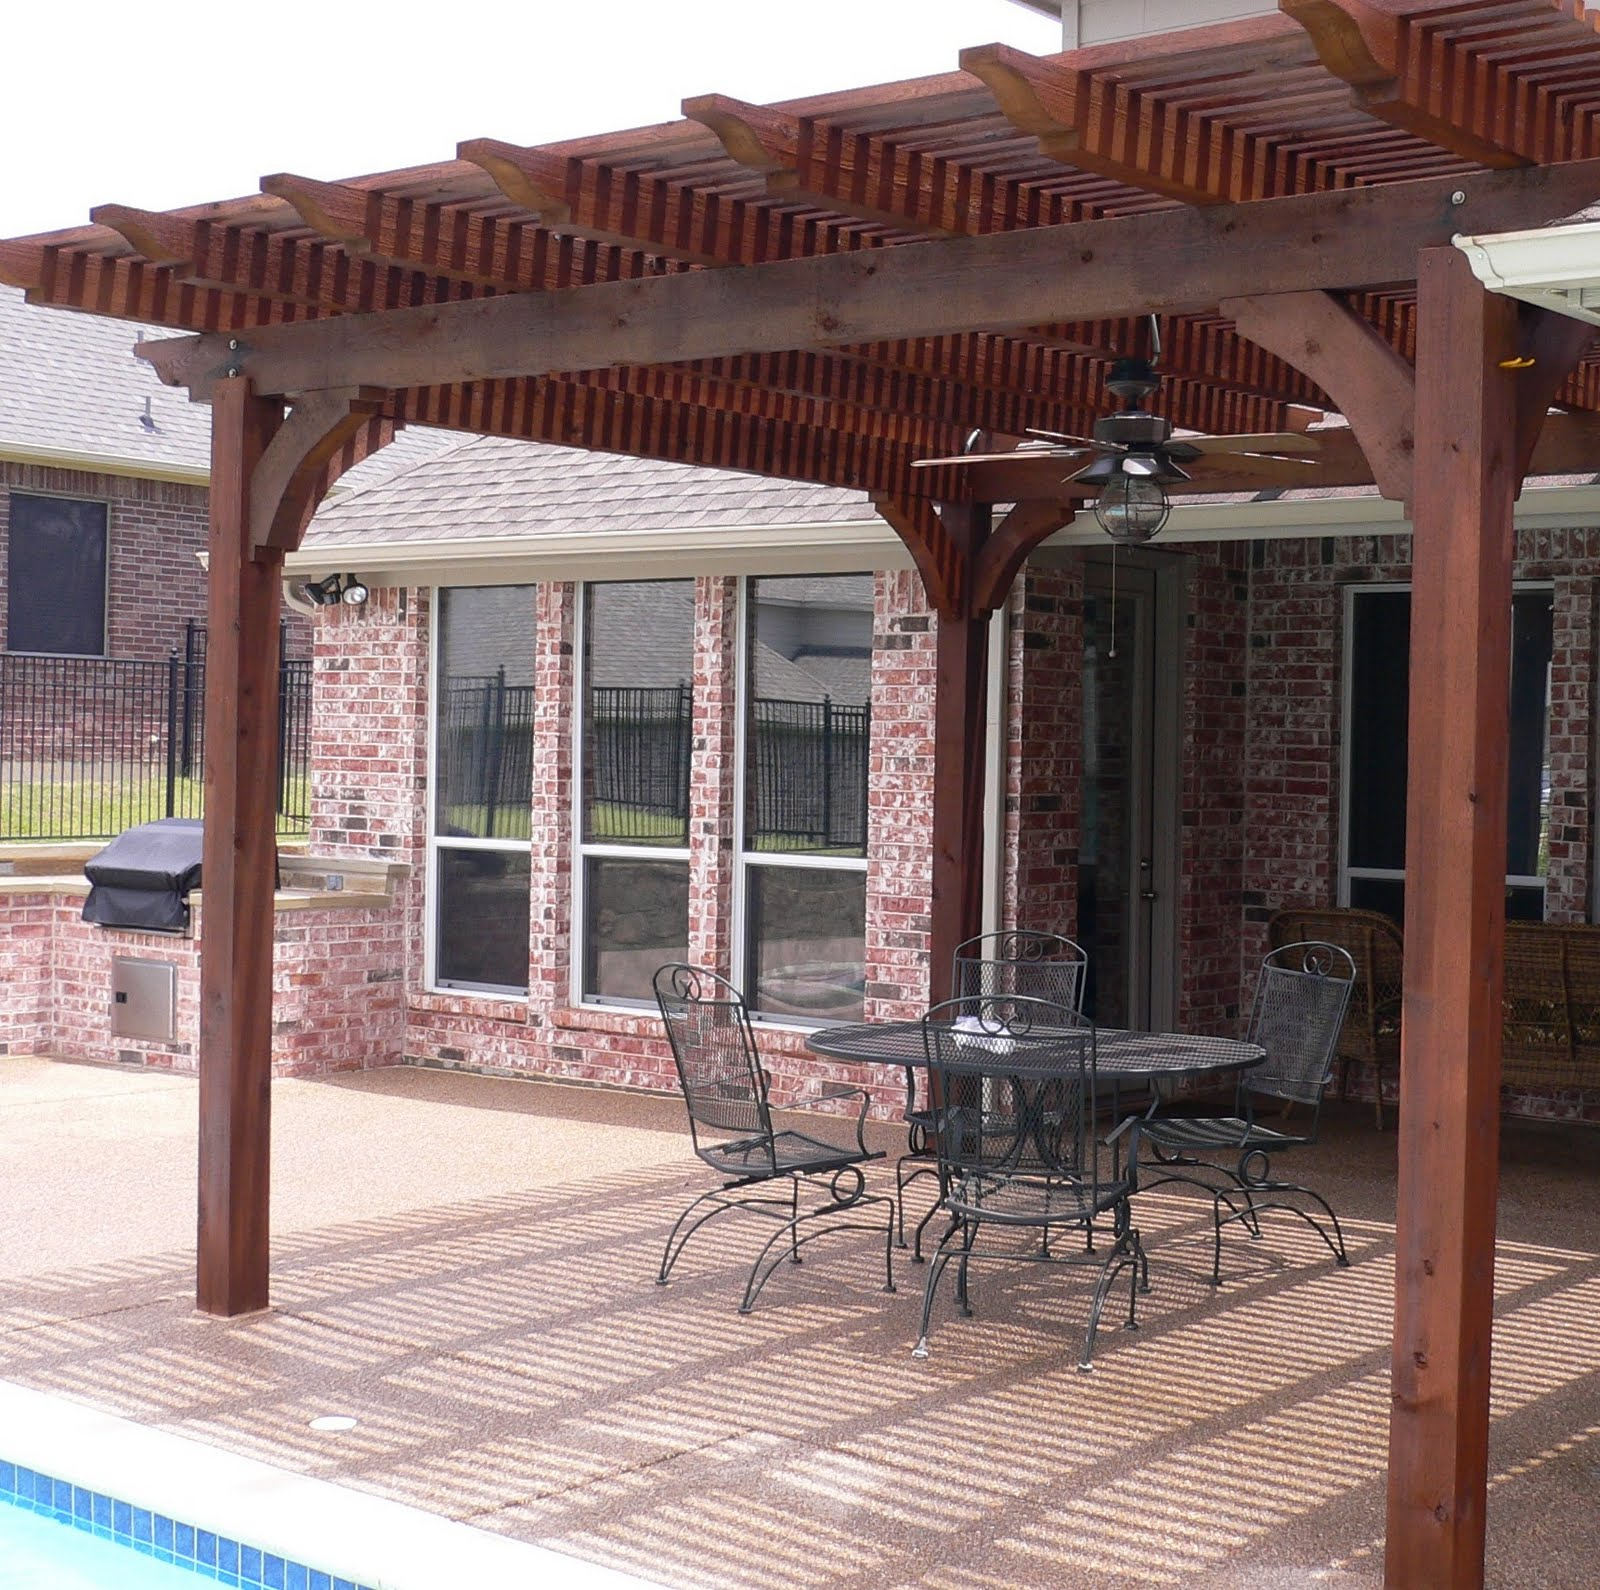 Roof Design Ideas: Wooden Patio Covers Design